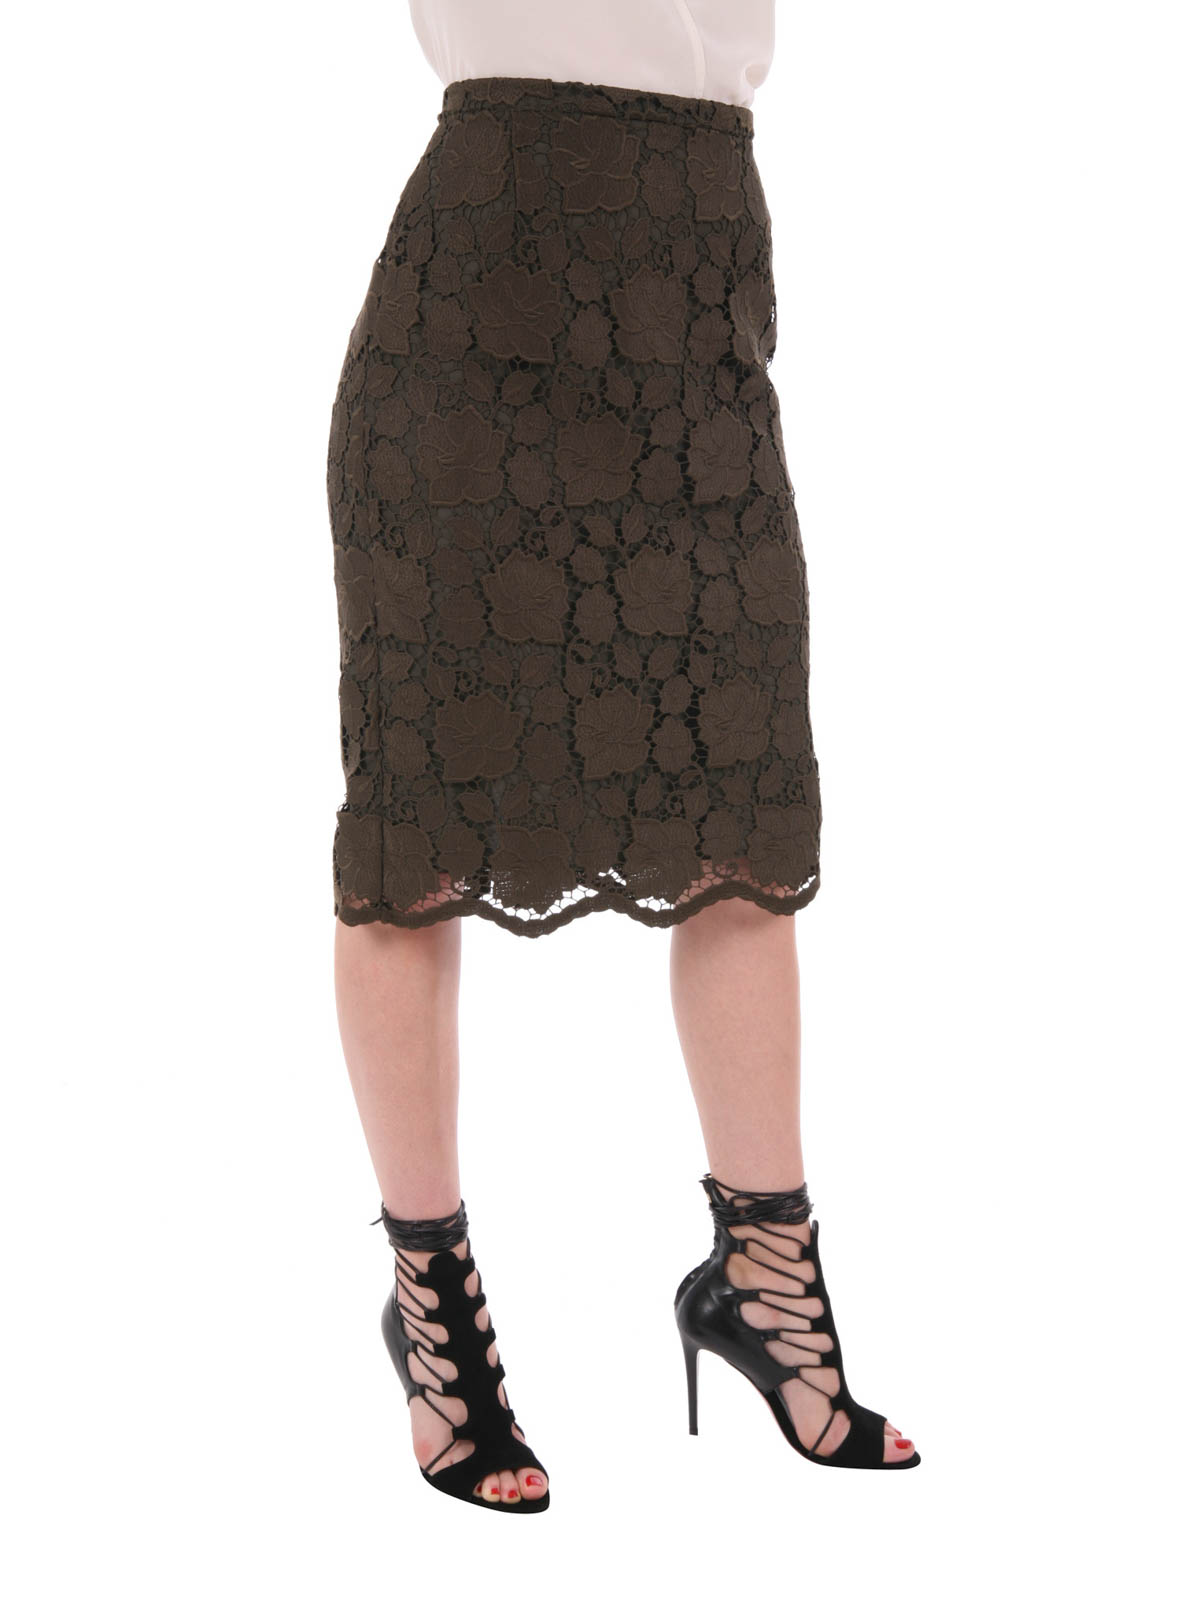 Free Shipping Geniue Stockist Classic Online Lace pencil skirt N°21 For Sale Official Site Comfortable VbQdNUmij